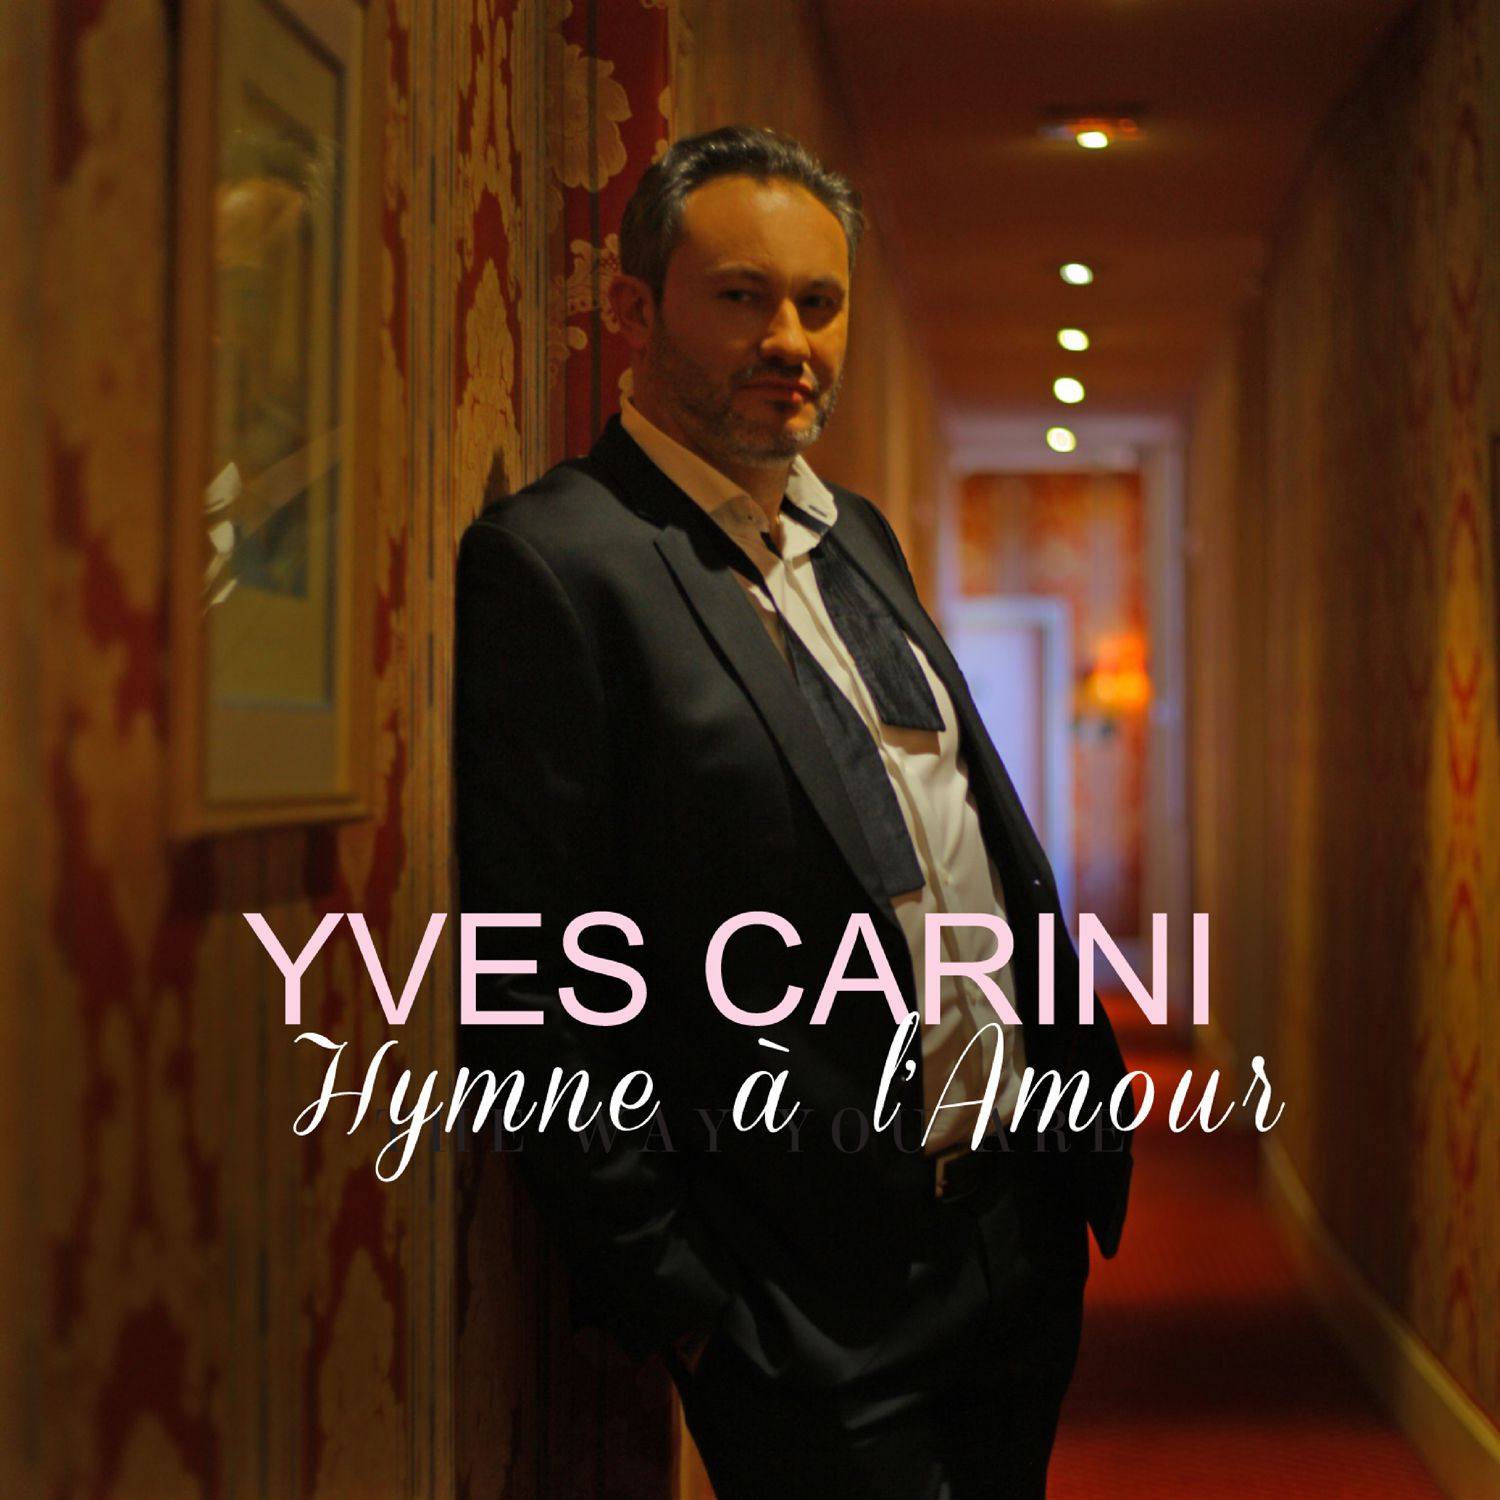 Yves Carini, The Way you are